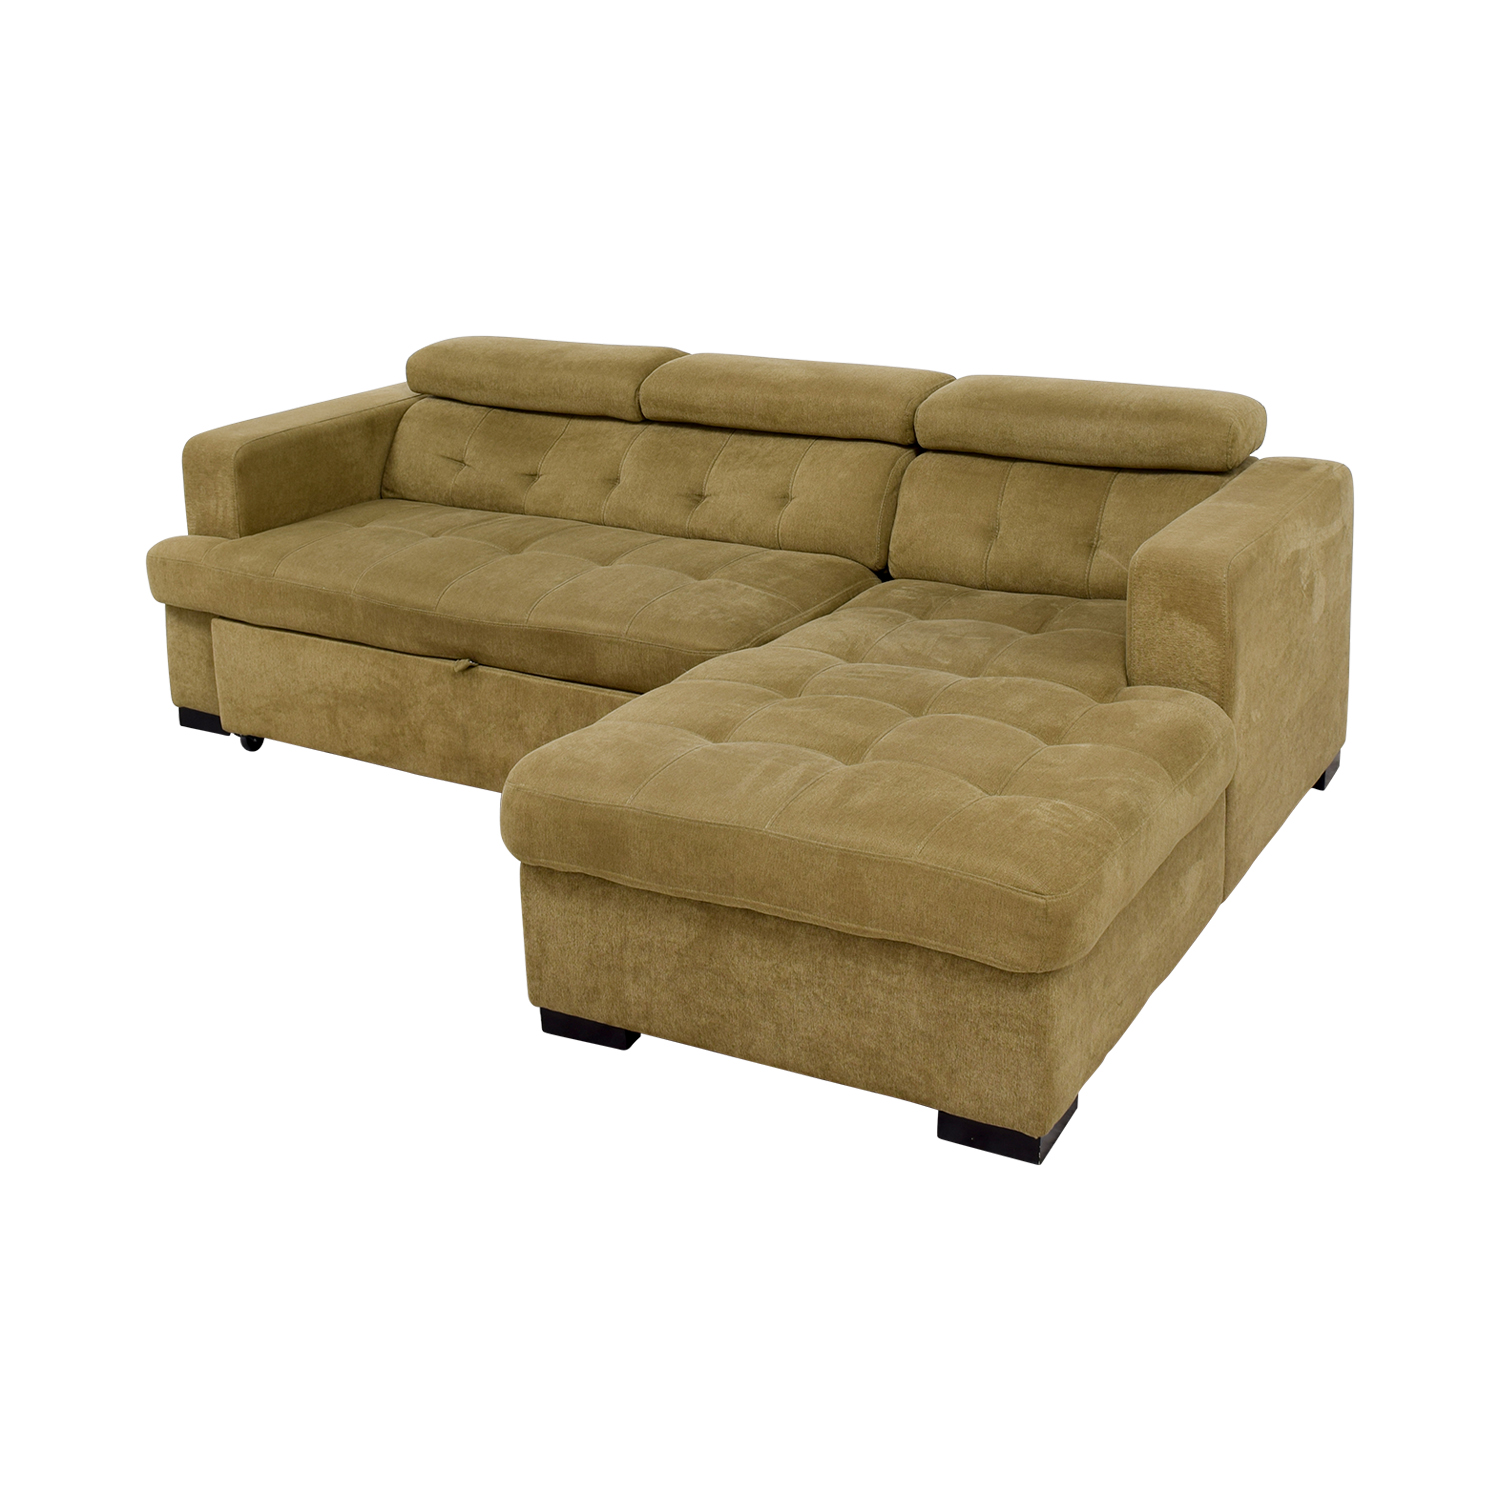 59 Off Bob S Discount Furniture Bob S Furniture Gold Chaise Sectional Sleeper Sofa Sofas